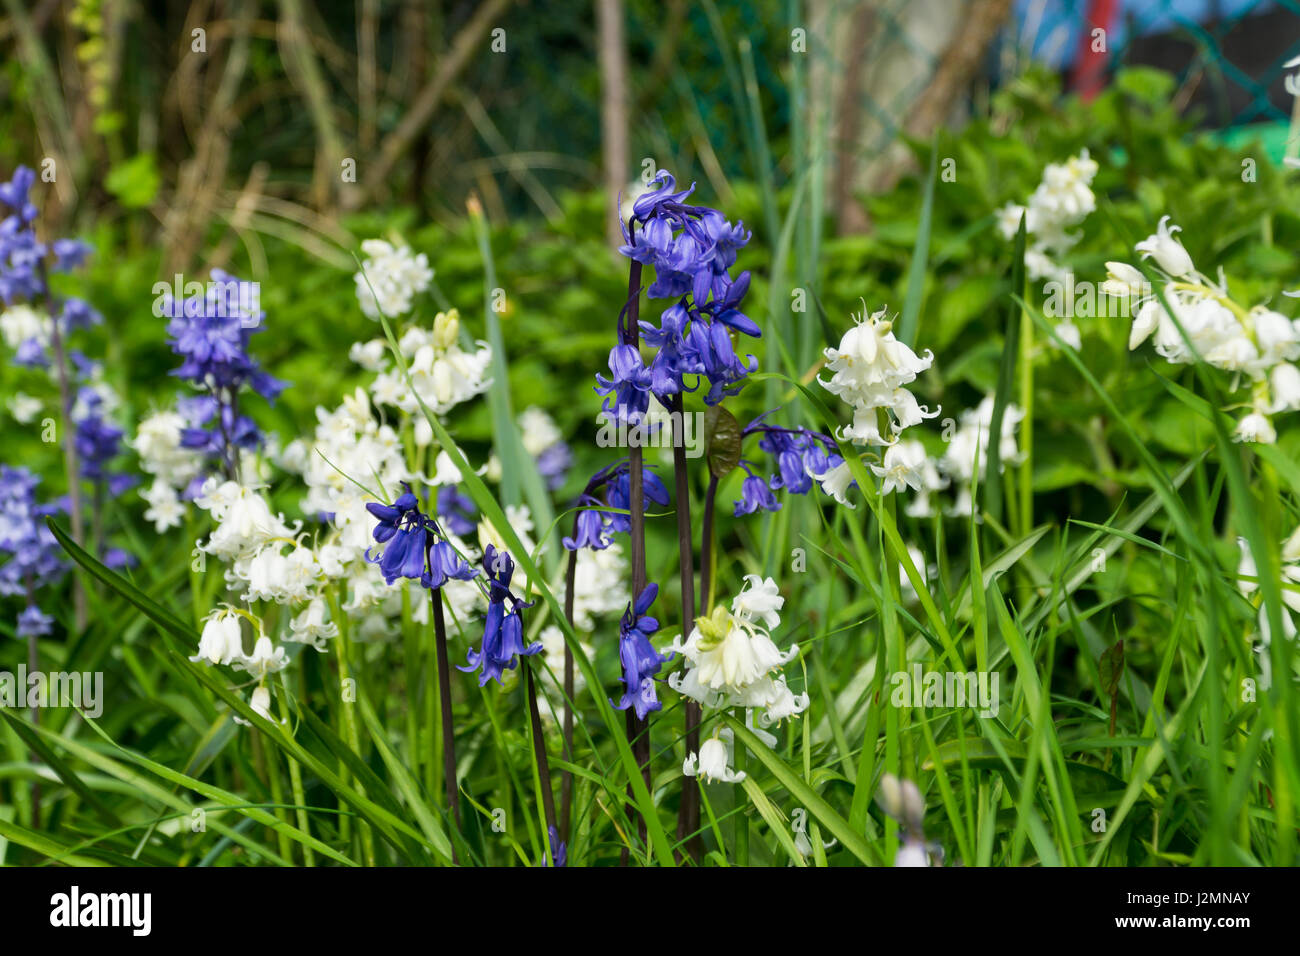 White bell flowers stock photos white bell flowers stock images blue white bell flowers amongst the grass in a garden stock image mightylinksfo